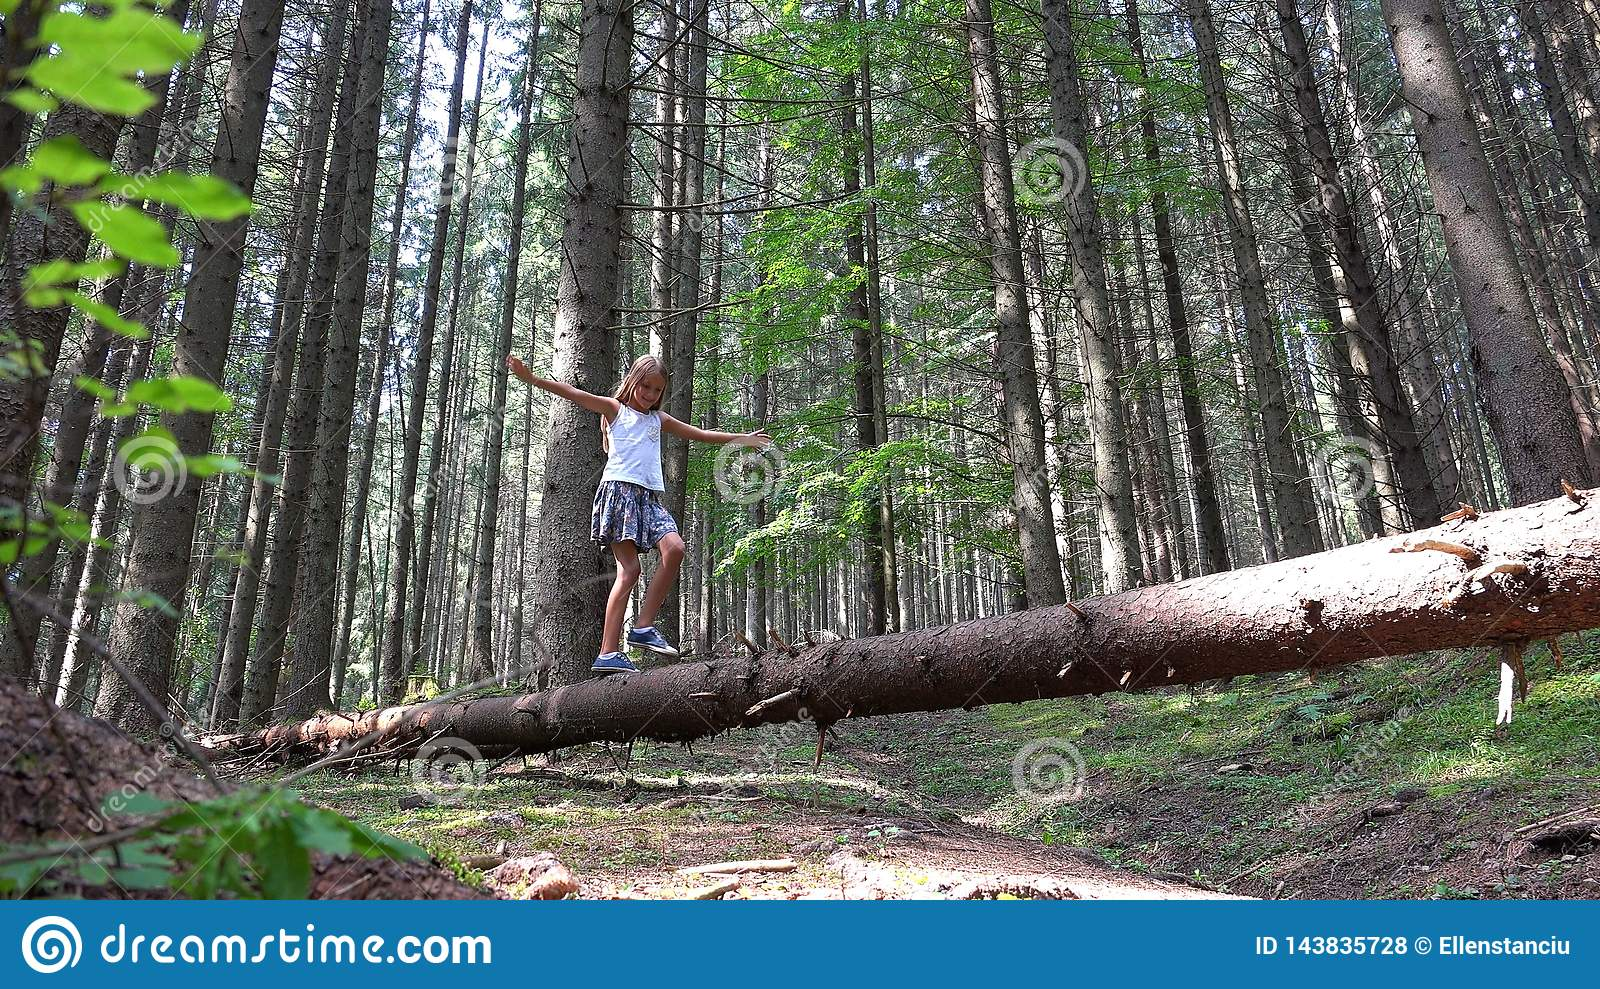 Child in Forest Walking Tree Log Kid Playing Camping Adventure Girl Outdoor Wood